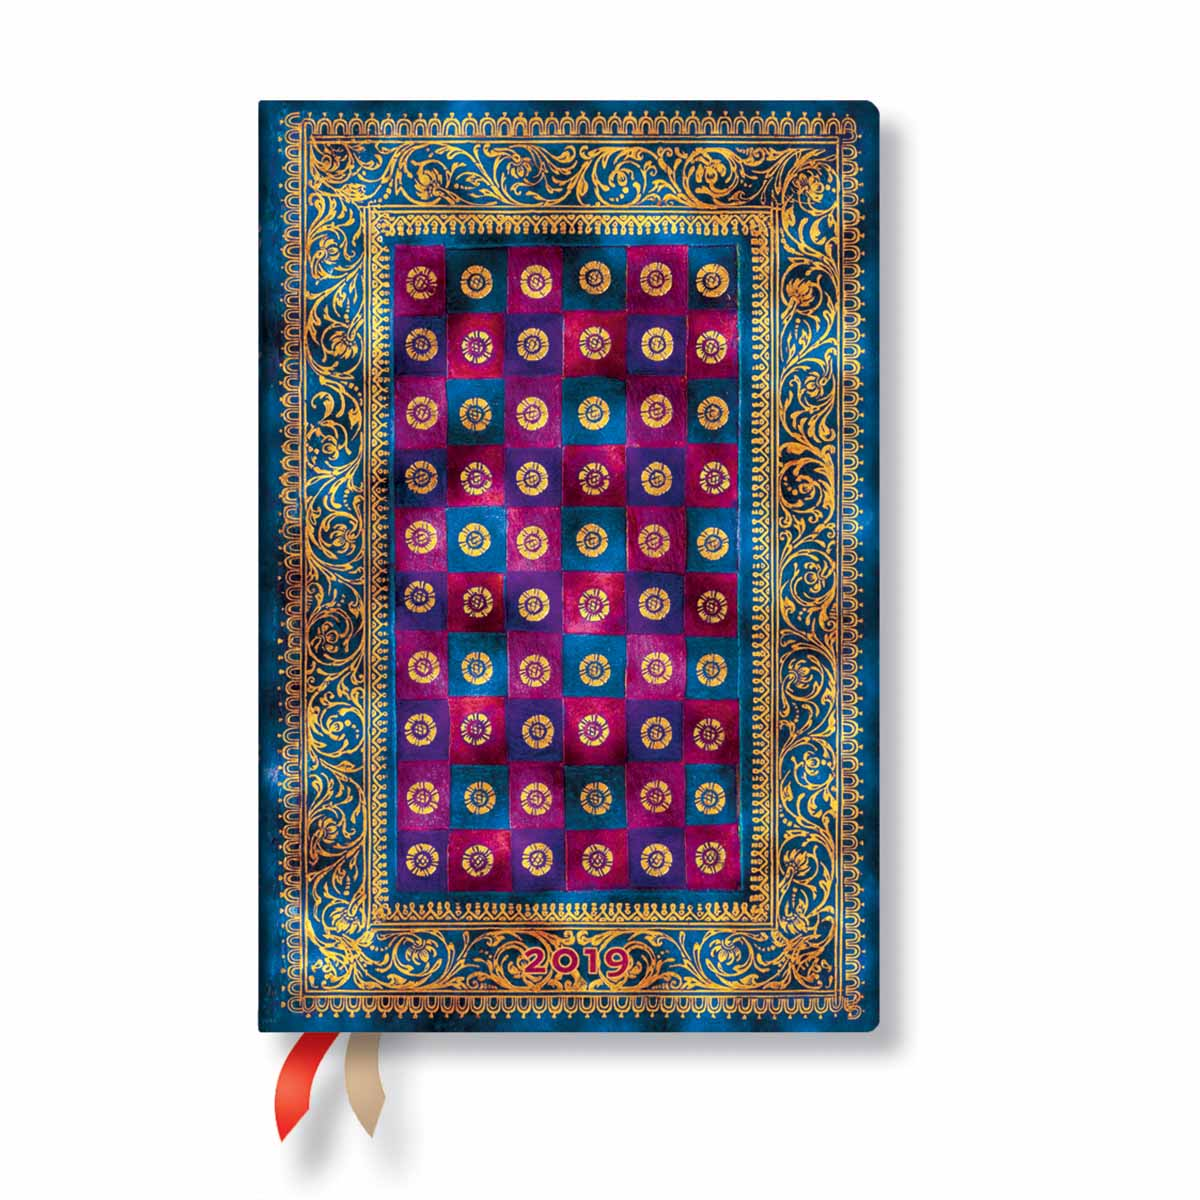 Paperblanks Mini Celeste 2019 Week-At-A-Time Planner